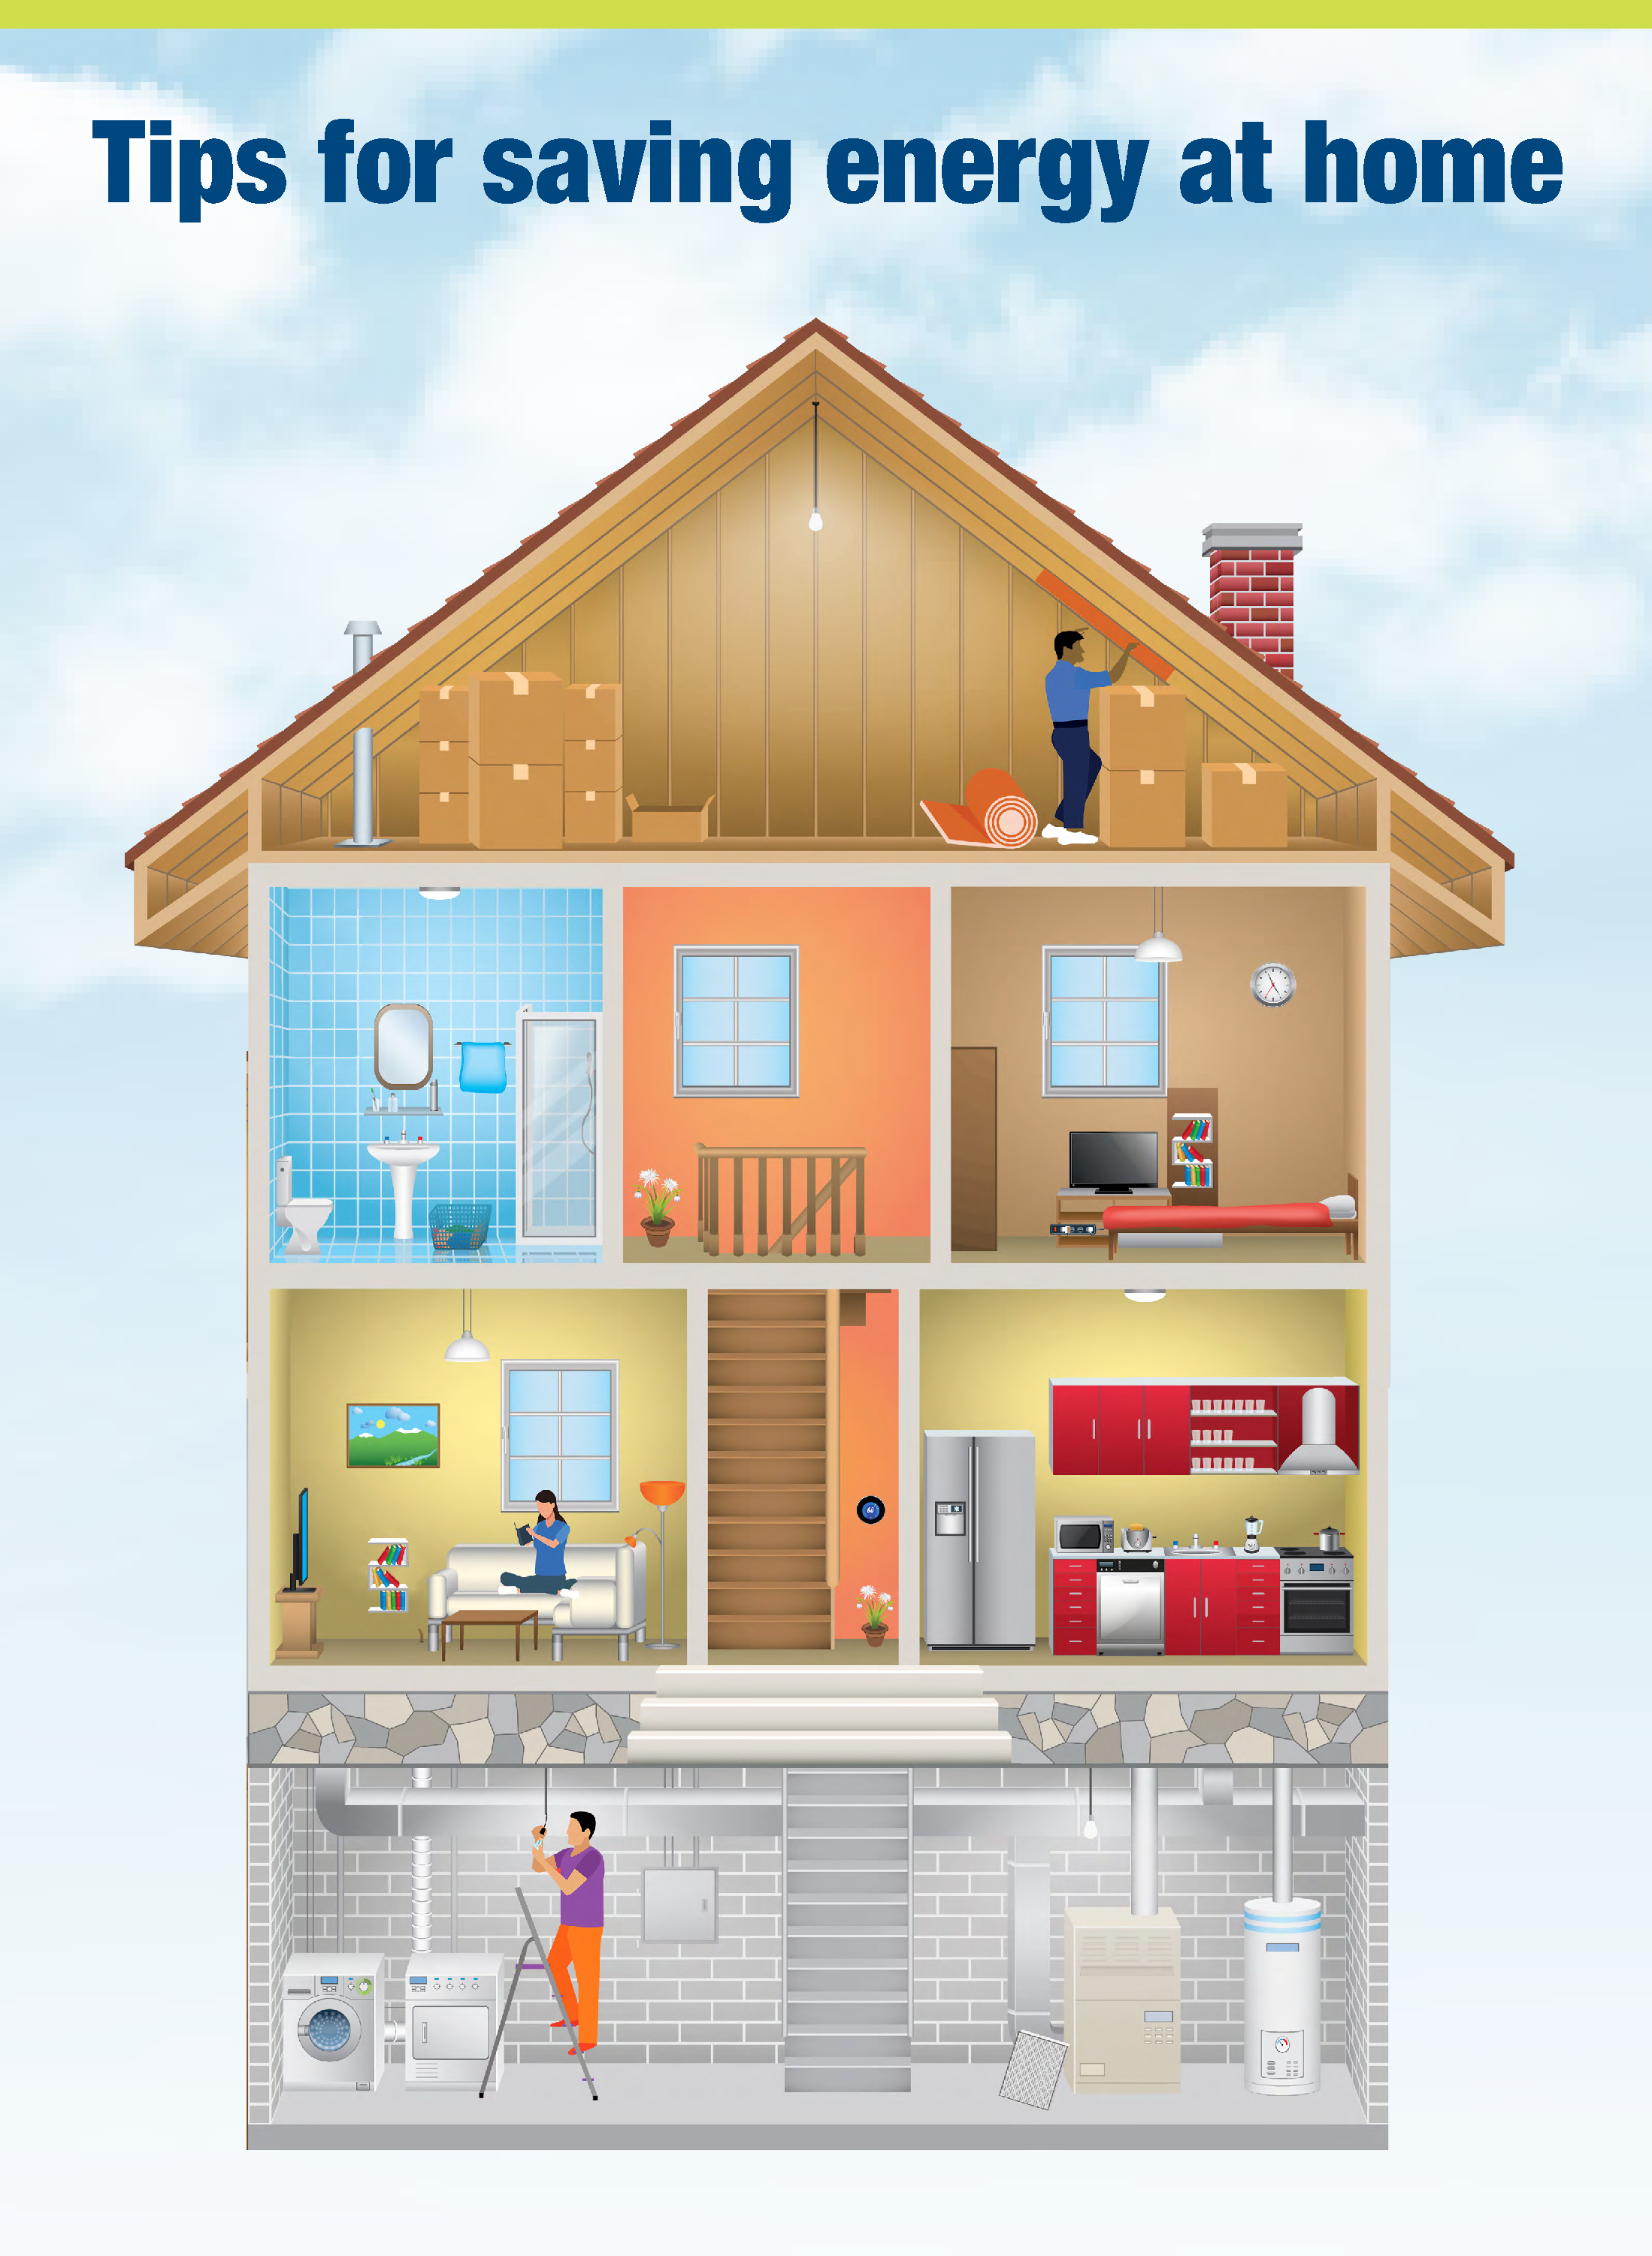 Tips for saving energy at home